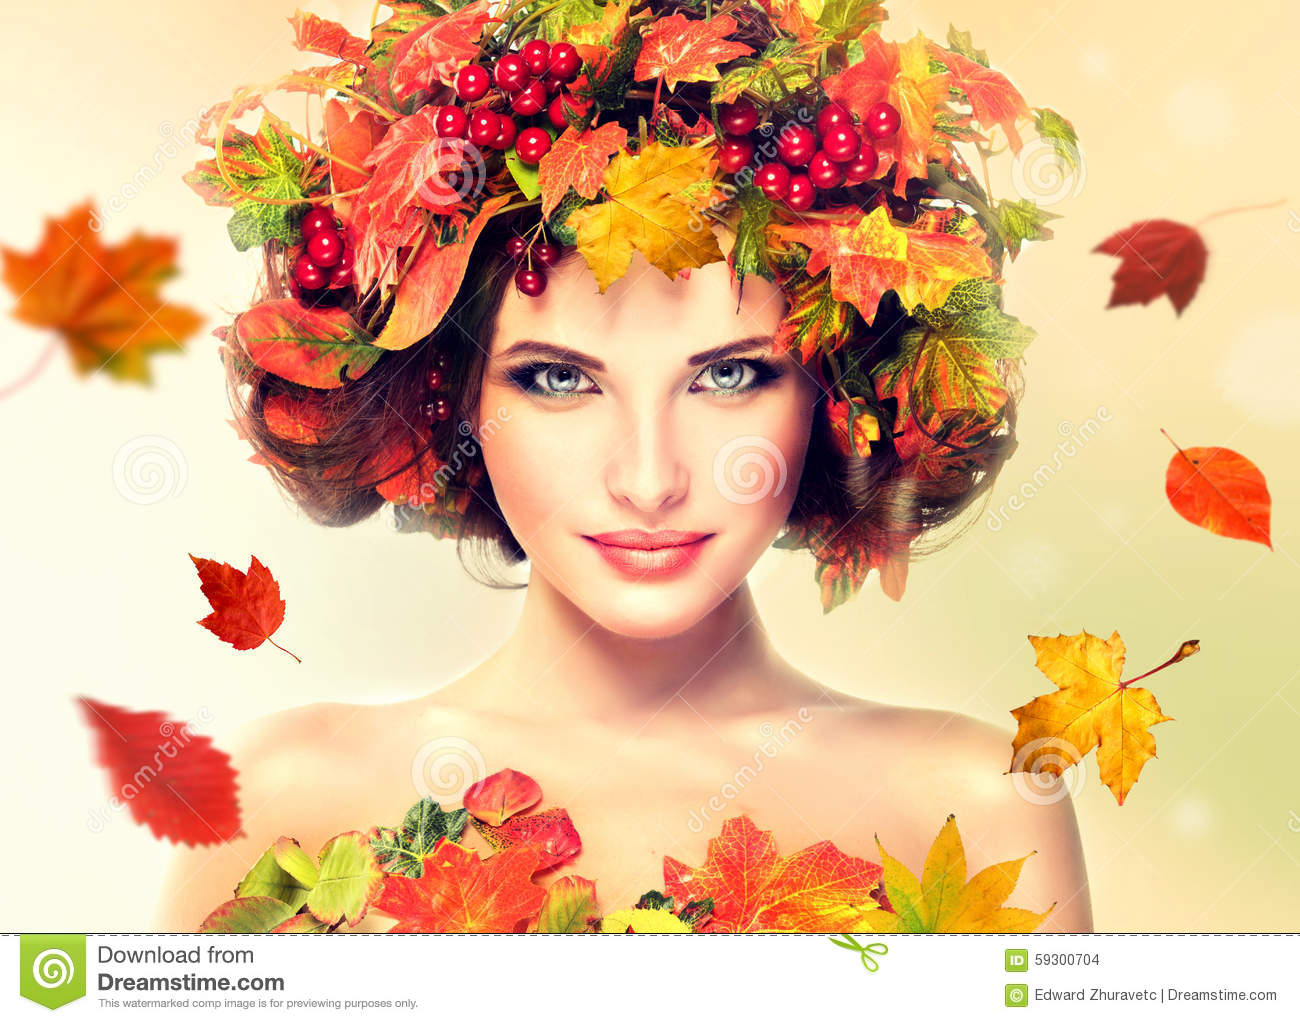 Red And Yellow Autumn Leaves On Girl Head. Stock Photo